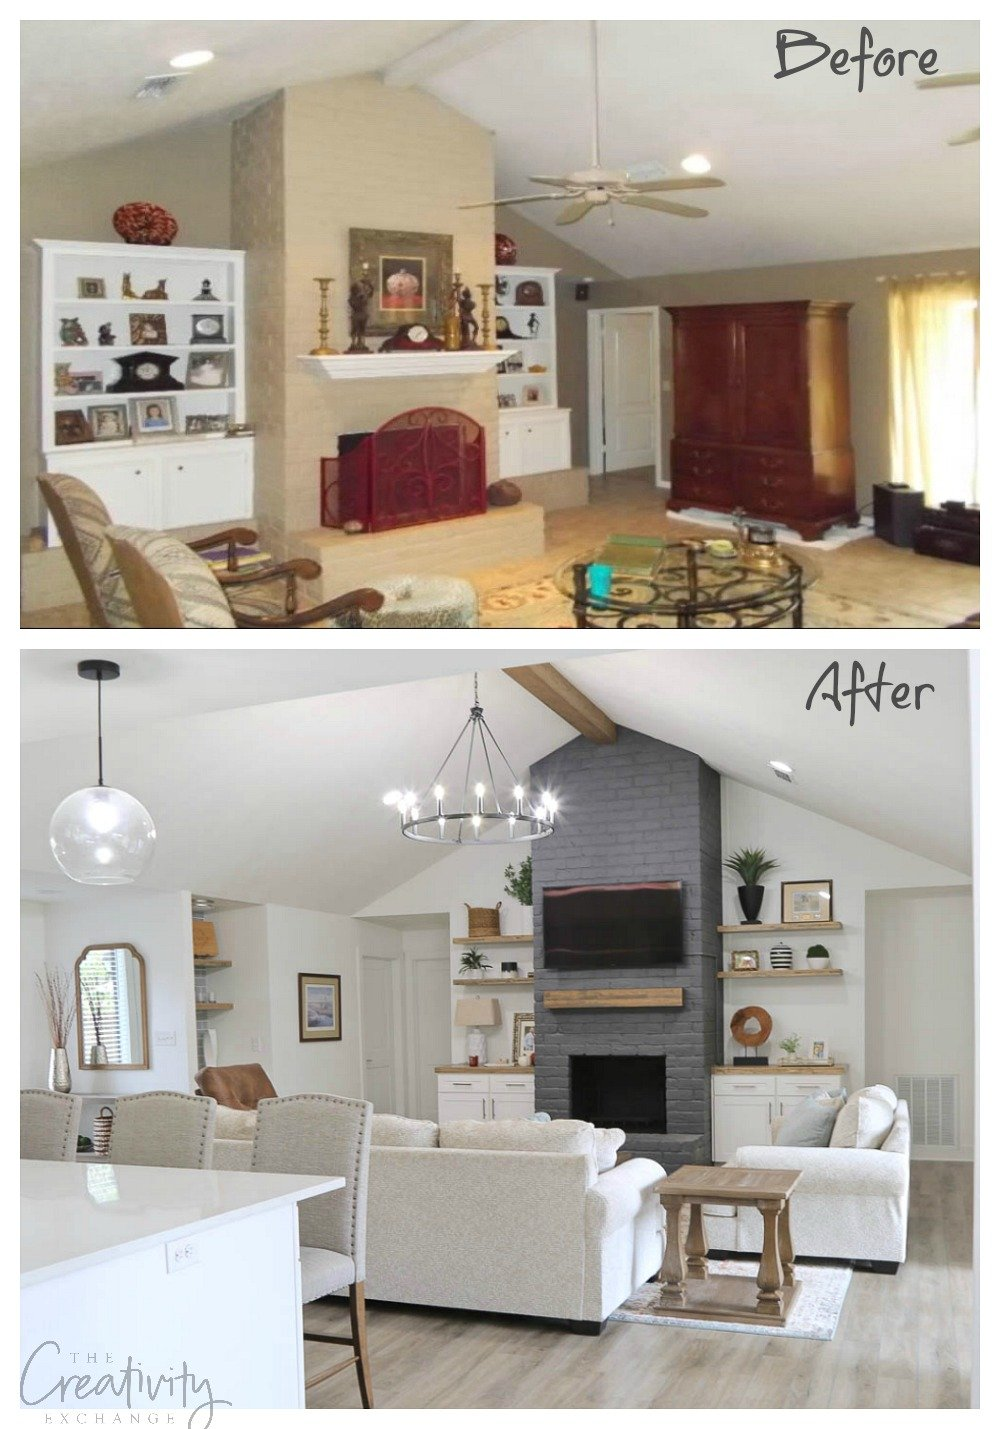 Amazing remodel transformation